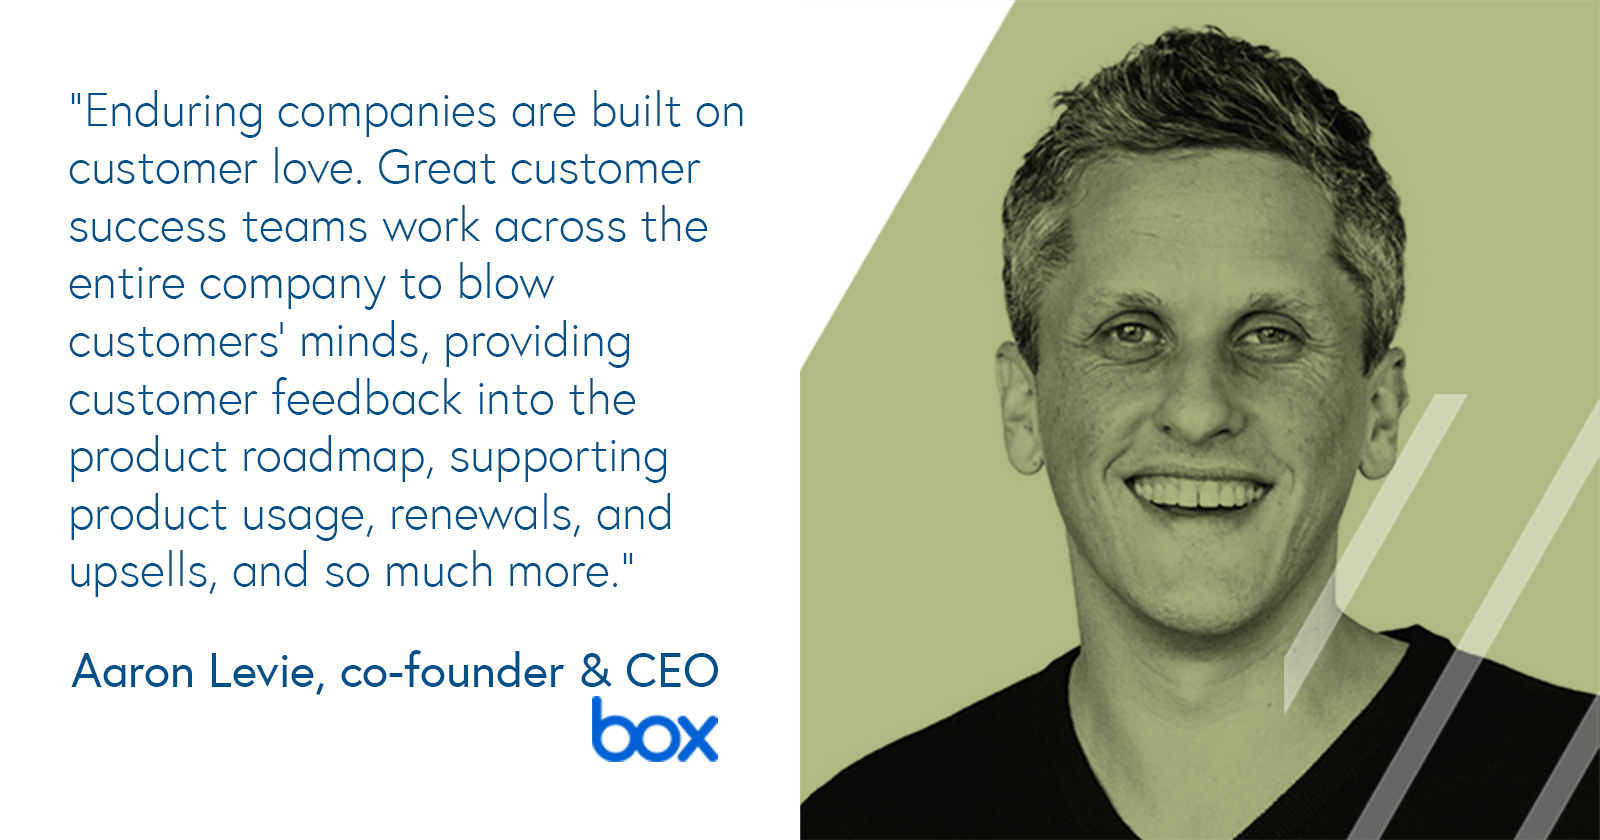 Aaron Levie, CEO of Box on customer love and customer success